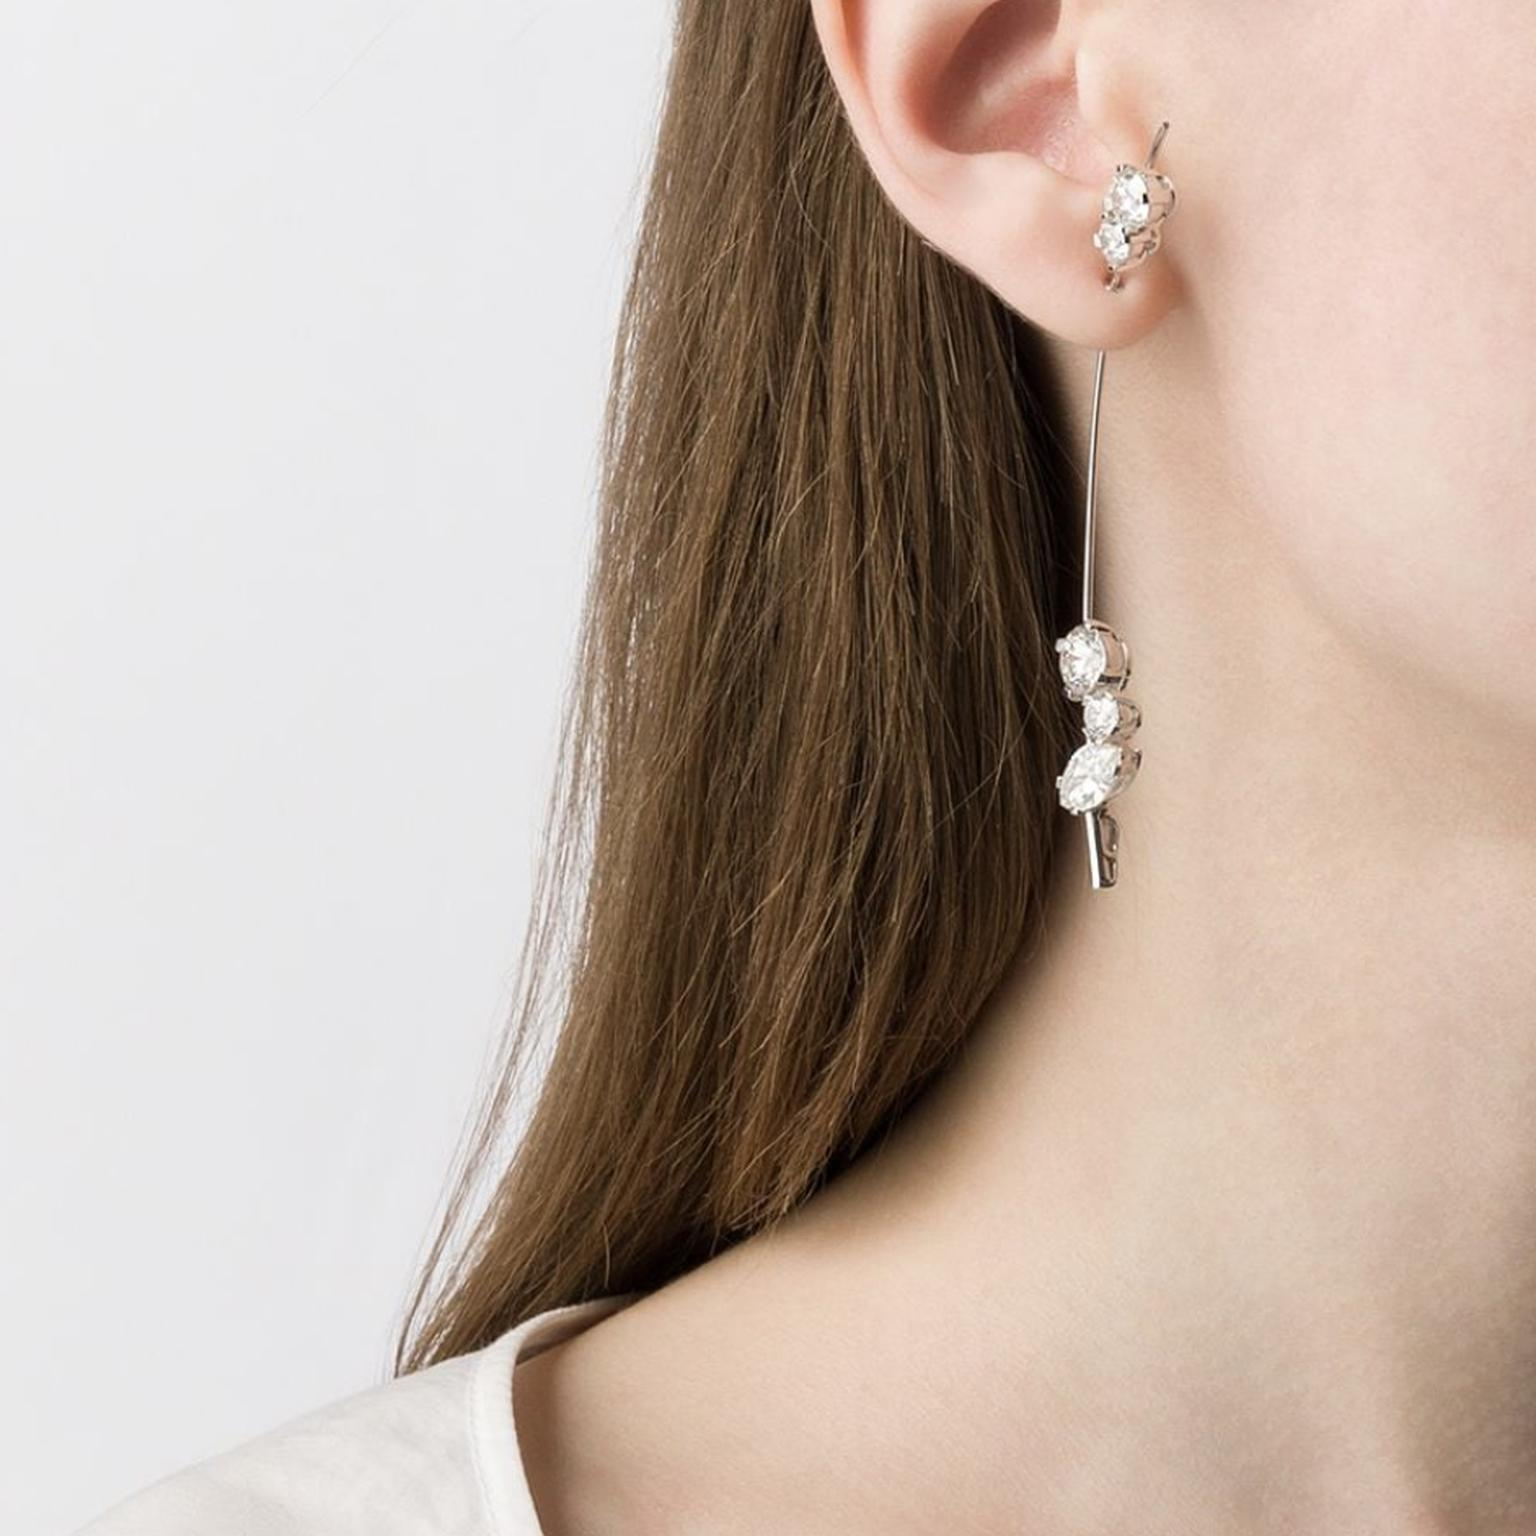 Earring by Sophie Bille Brahe on model